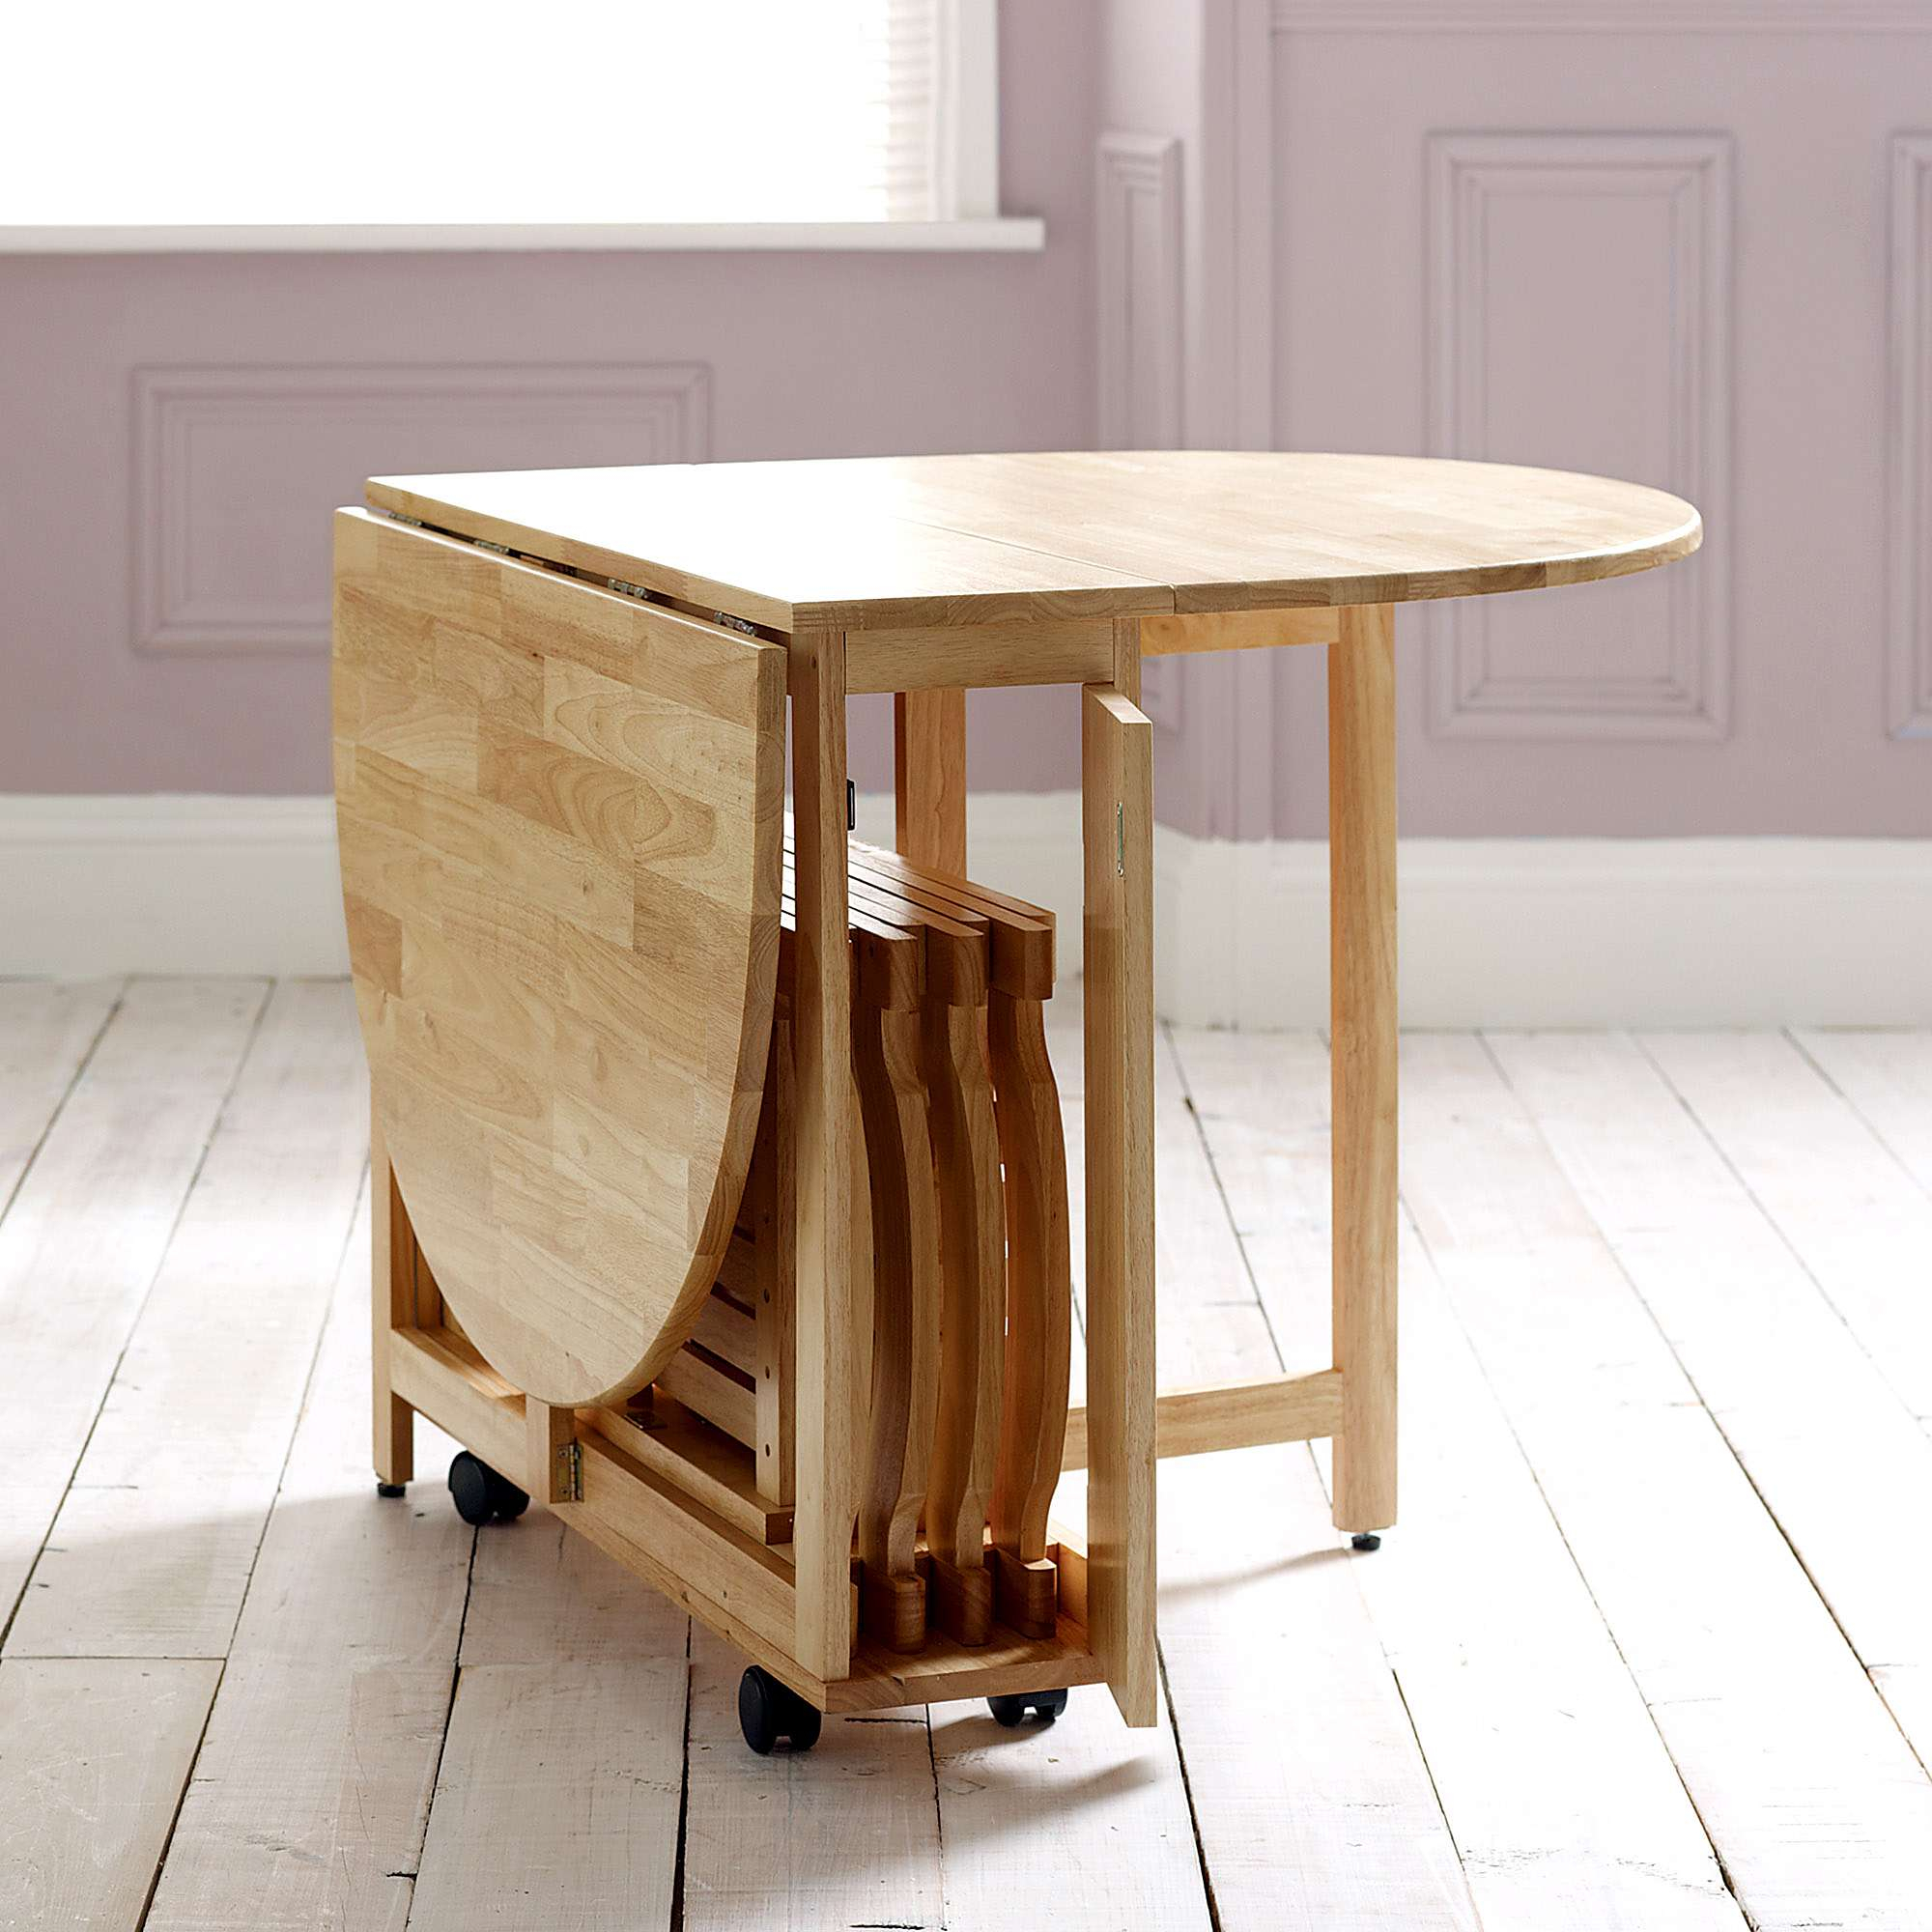 Choose A Folding Dining Table For A Small Space Adorable Home throughout sizing 2000 X 2000